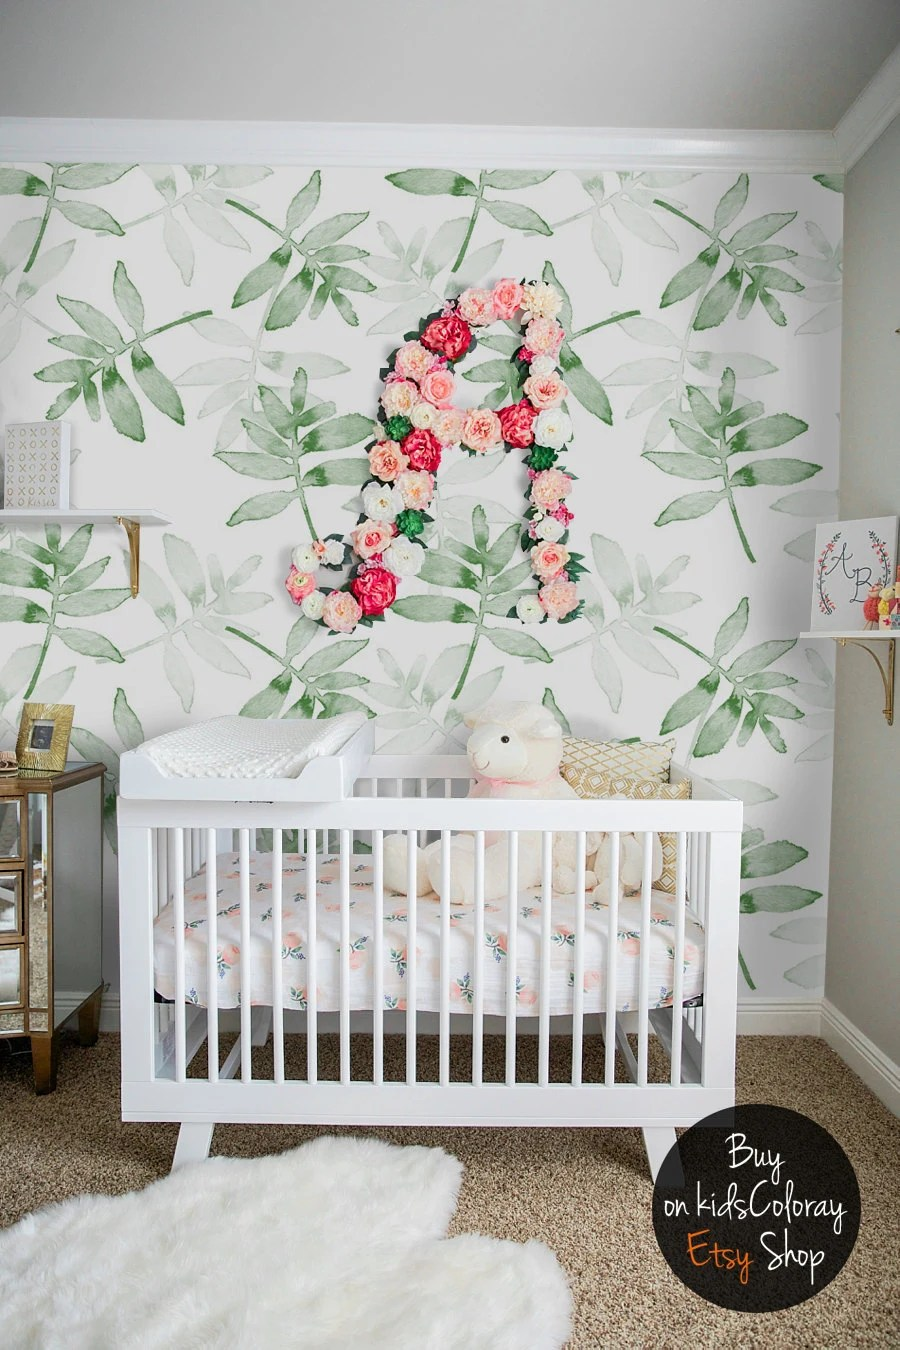 Wandtapete Kinderzimmer Green Leaves Wallpaper Tropical Plants Wall Mural Kids